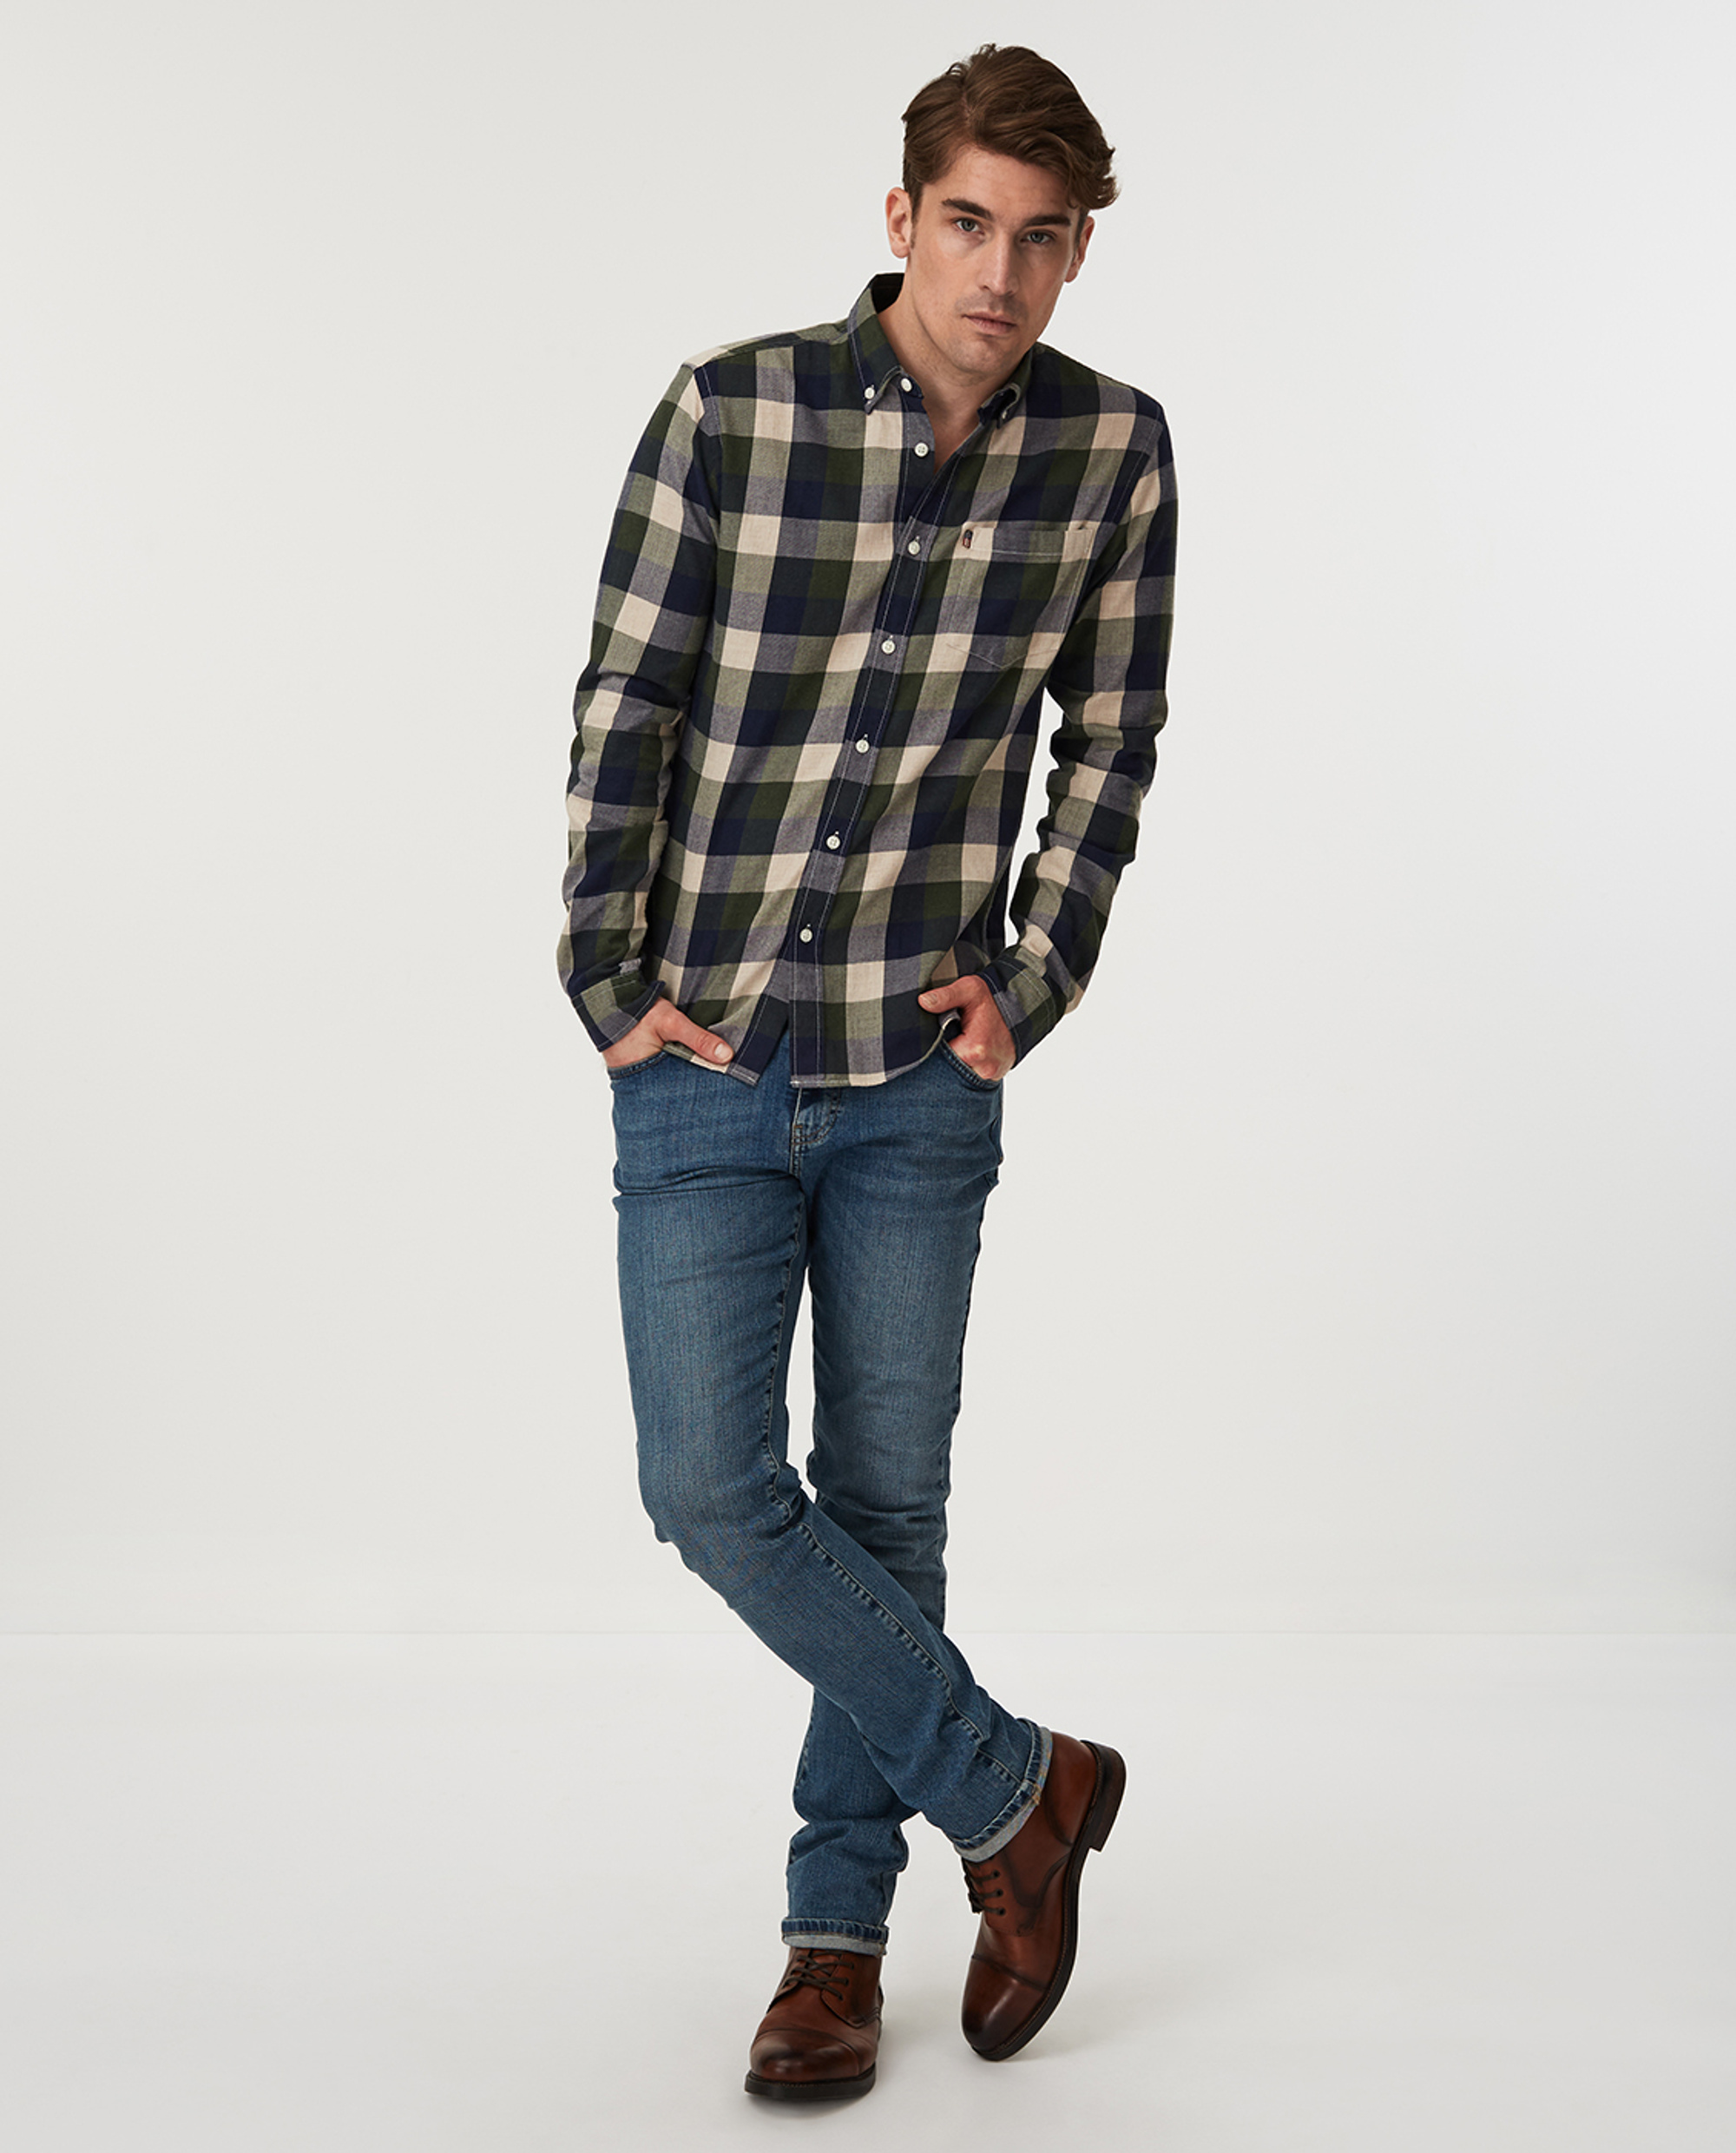 Peter Lt Flannel Shirt, Green Multi Check